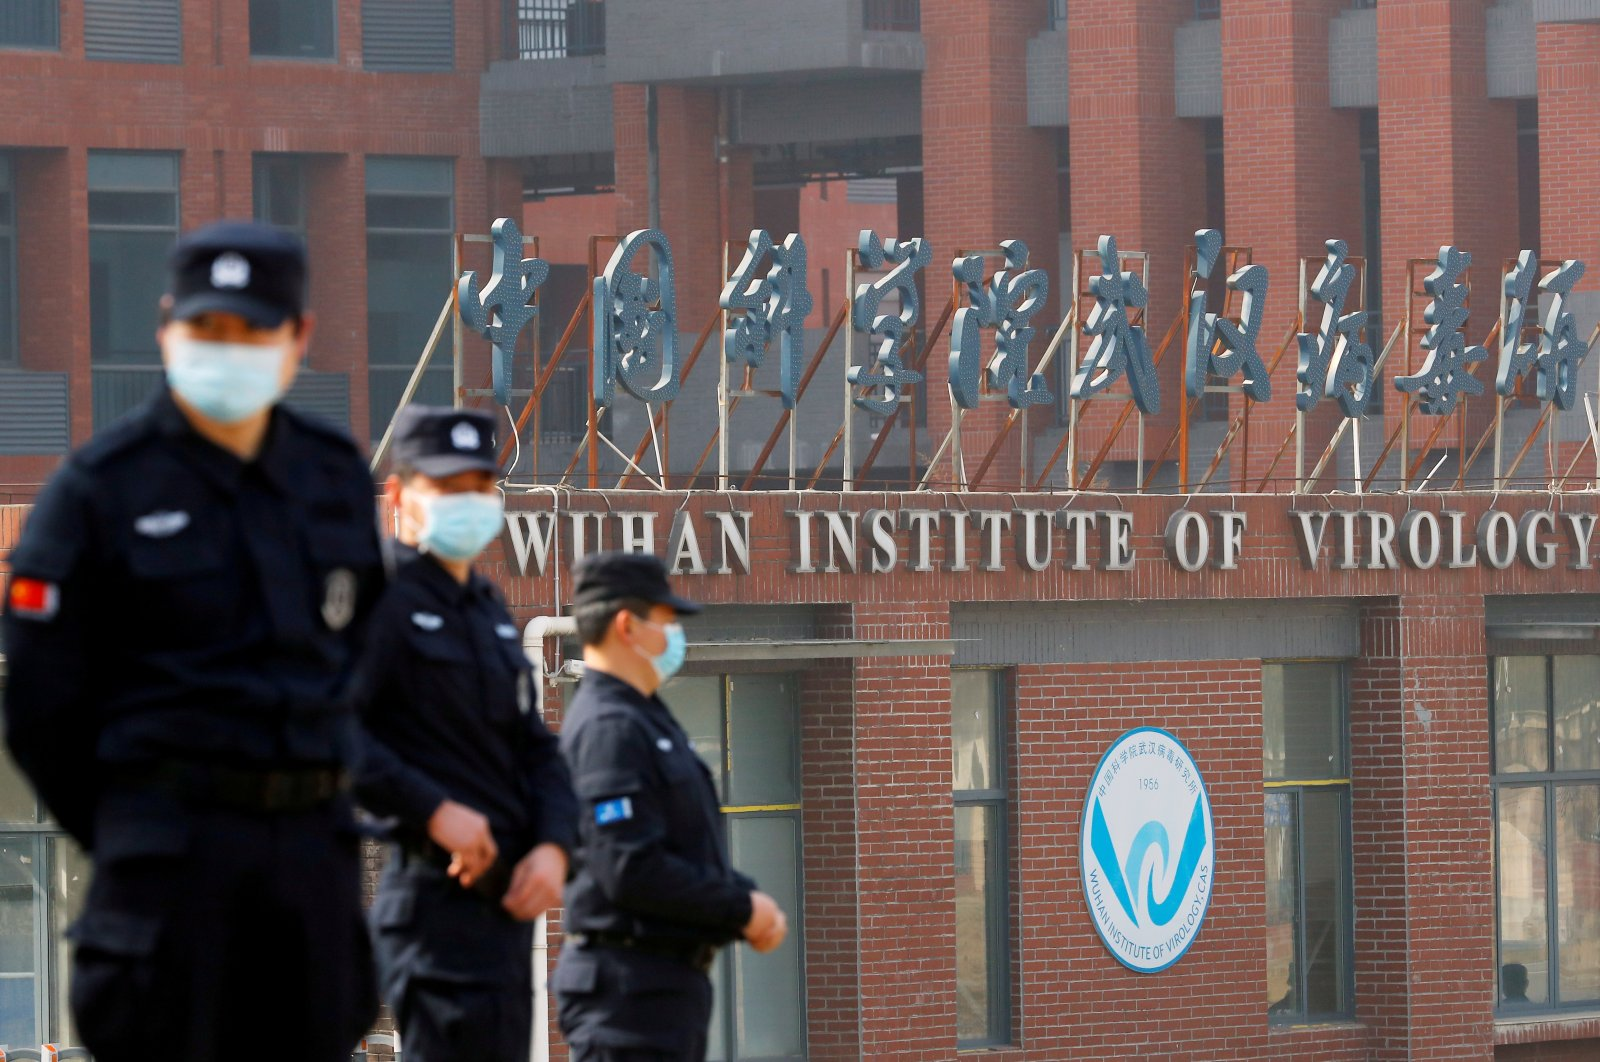 Security personnel keep watch outside the Wuhan Institute of Virology during the visit by the World Health Organization (WHO) team tasked with investigating the origins of the coronavirus disease (COVID-19), inWuhan, Hubei province, China, Feb. 3, 2021. (Reuters Photo)